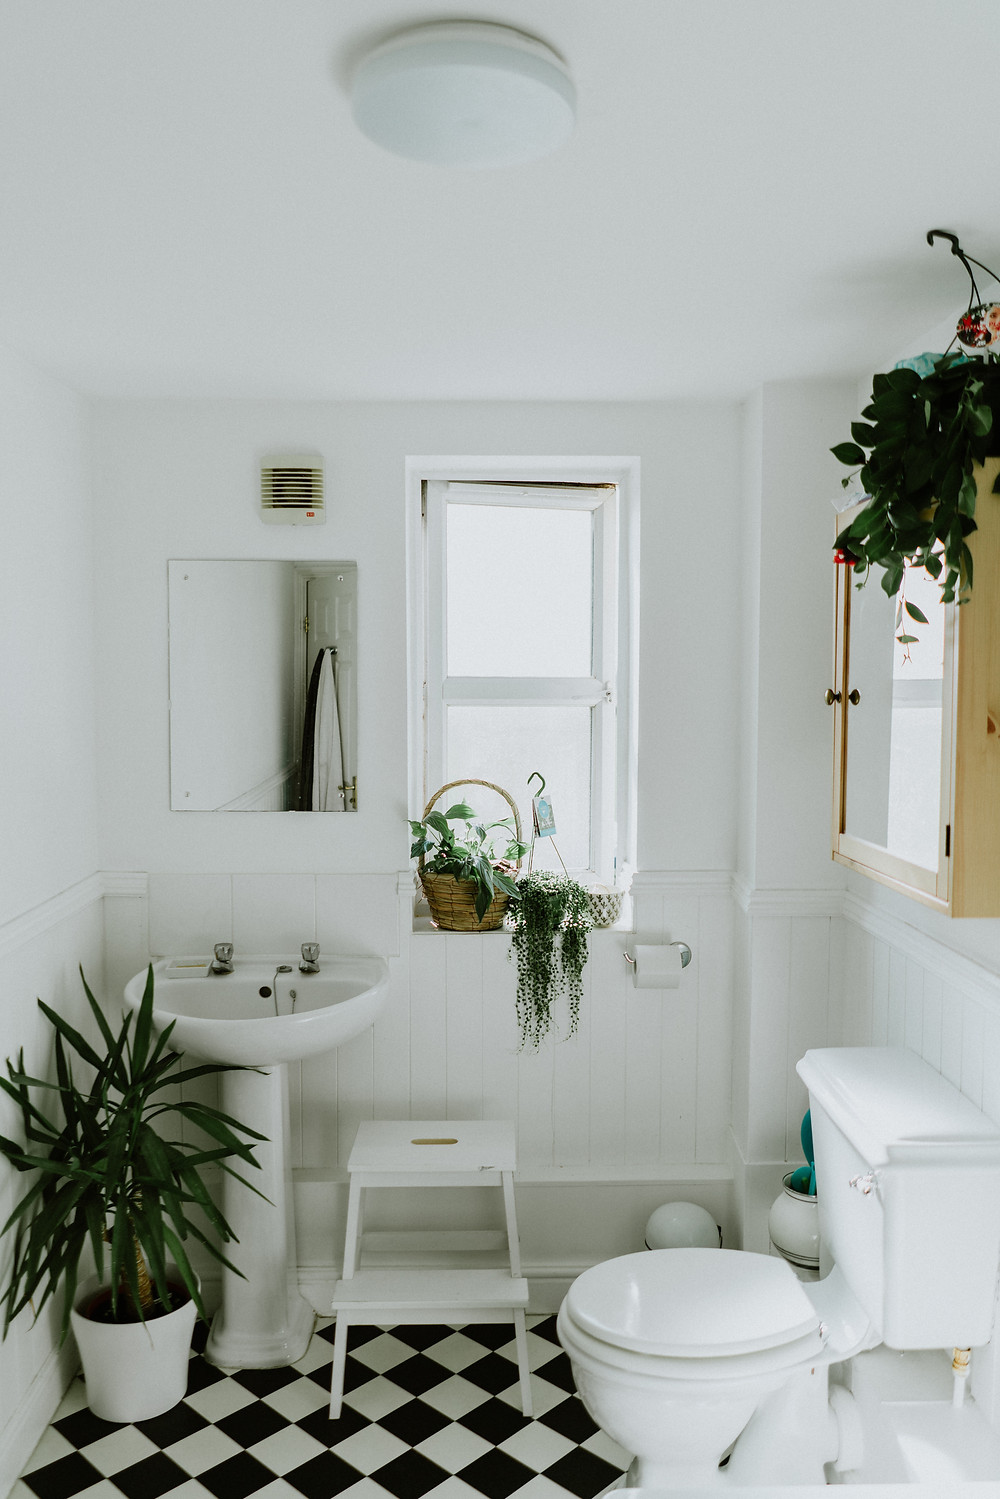 A bathroom with white sink and toilet